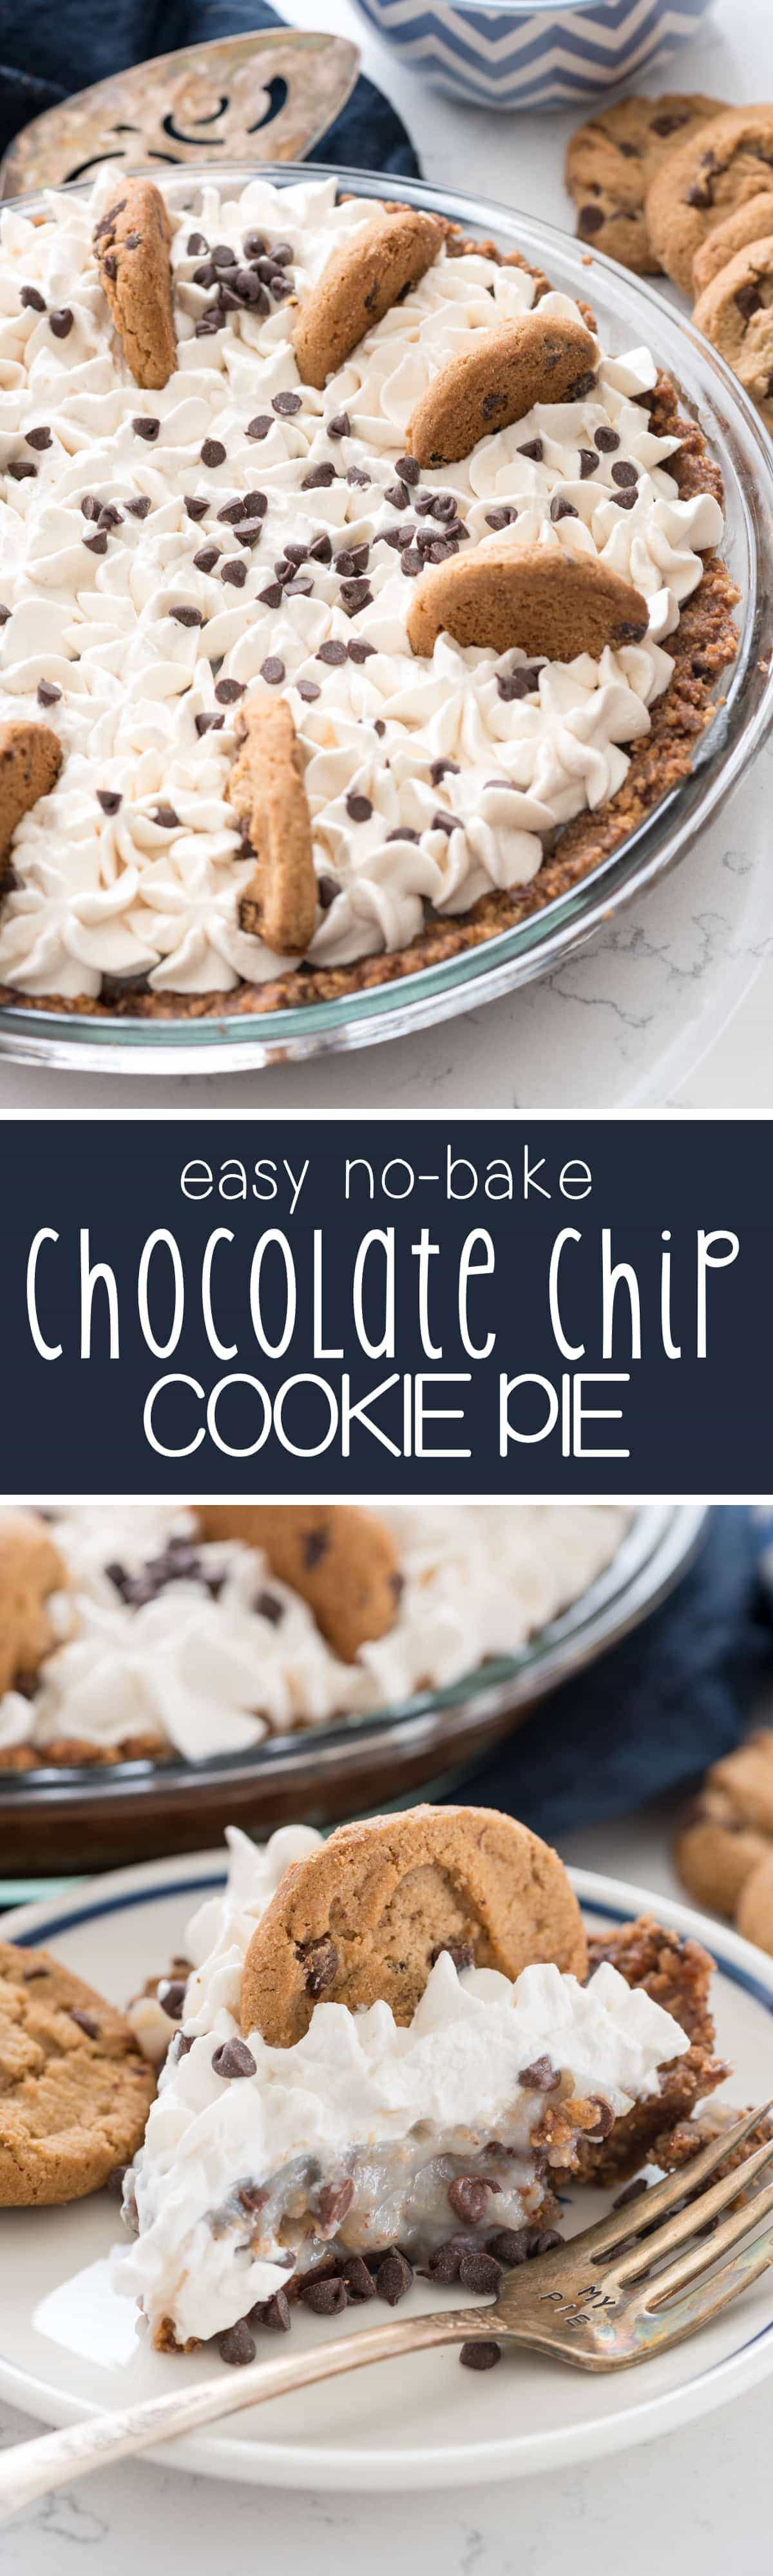 No Bake Chocolate Chip Cookie Pudding Pie - this pie has an easy no bake chocolate chip cookie crust and is filled with pudding and more cookies! My family loved this pie!